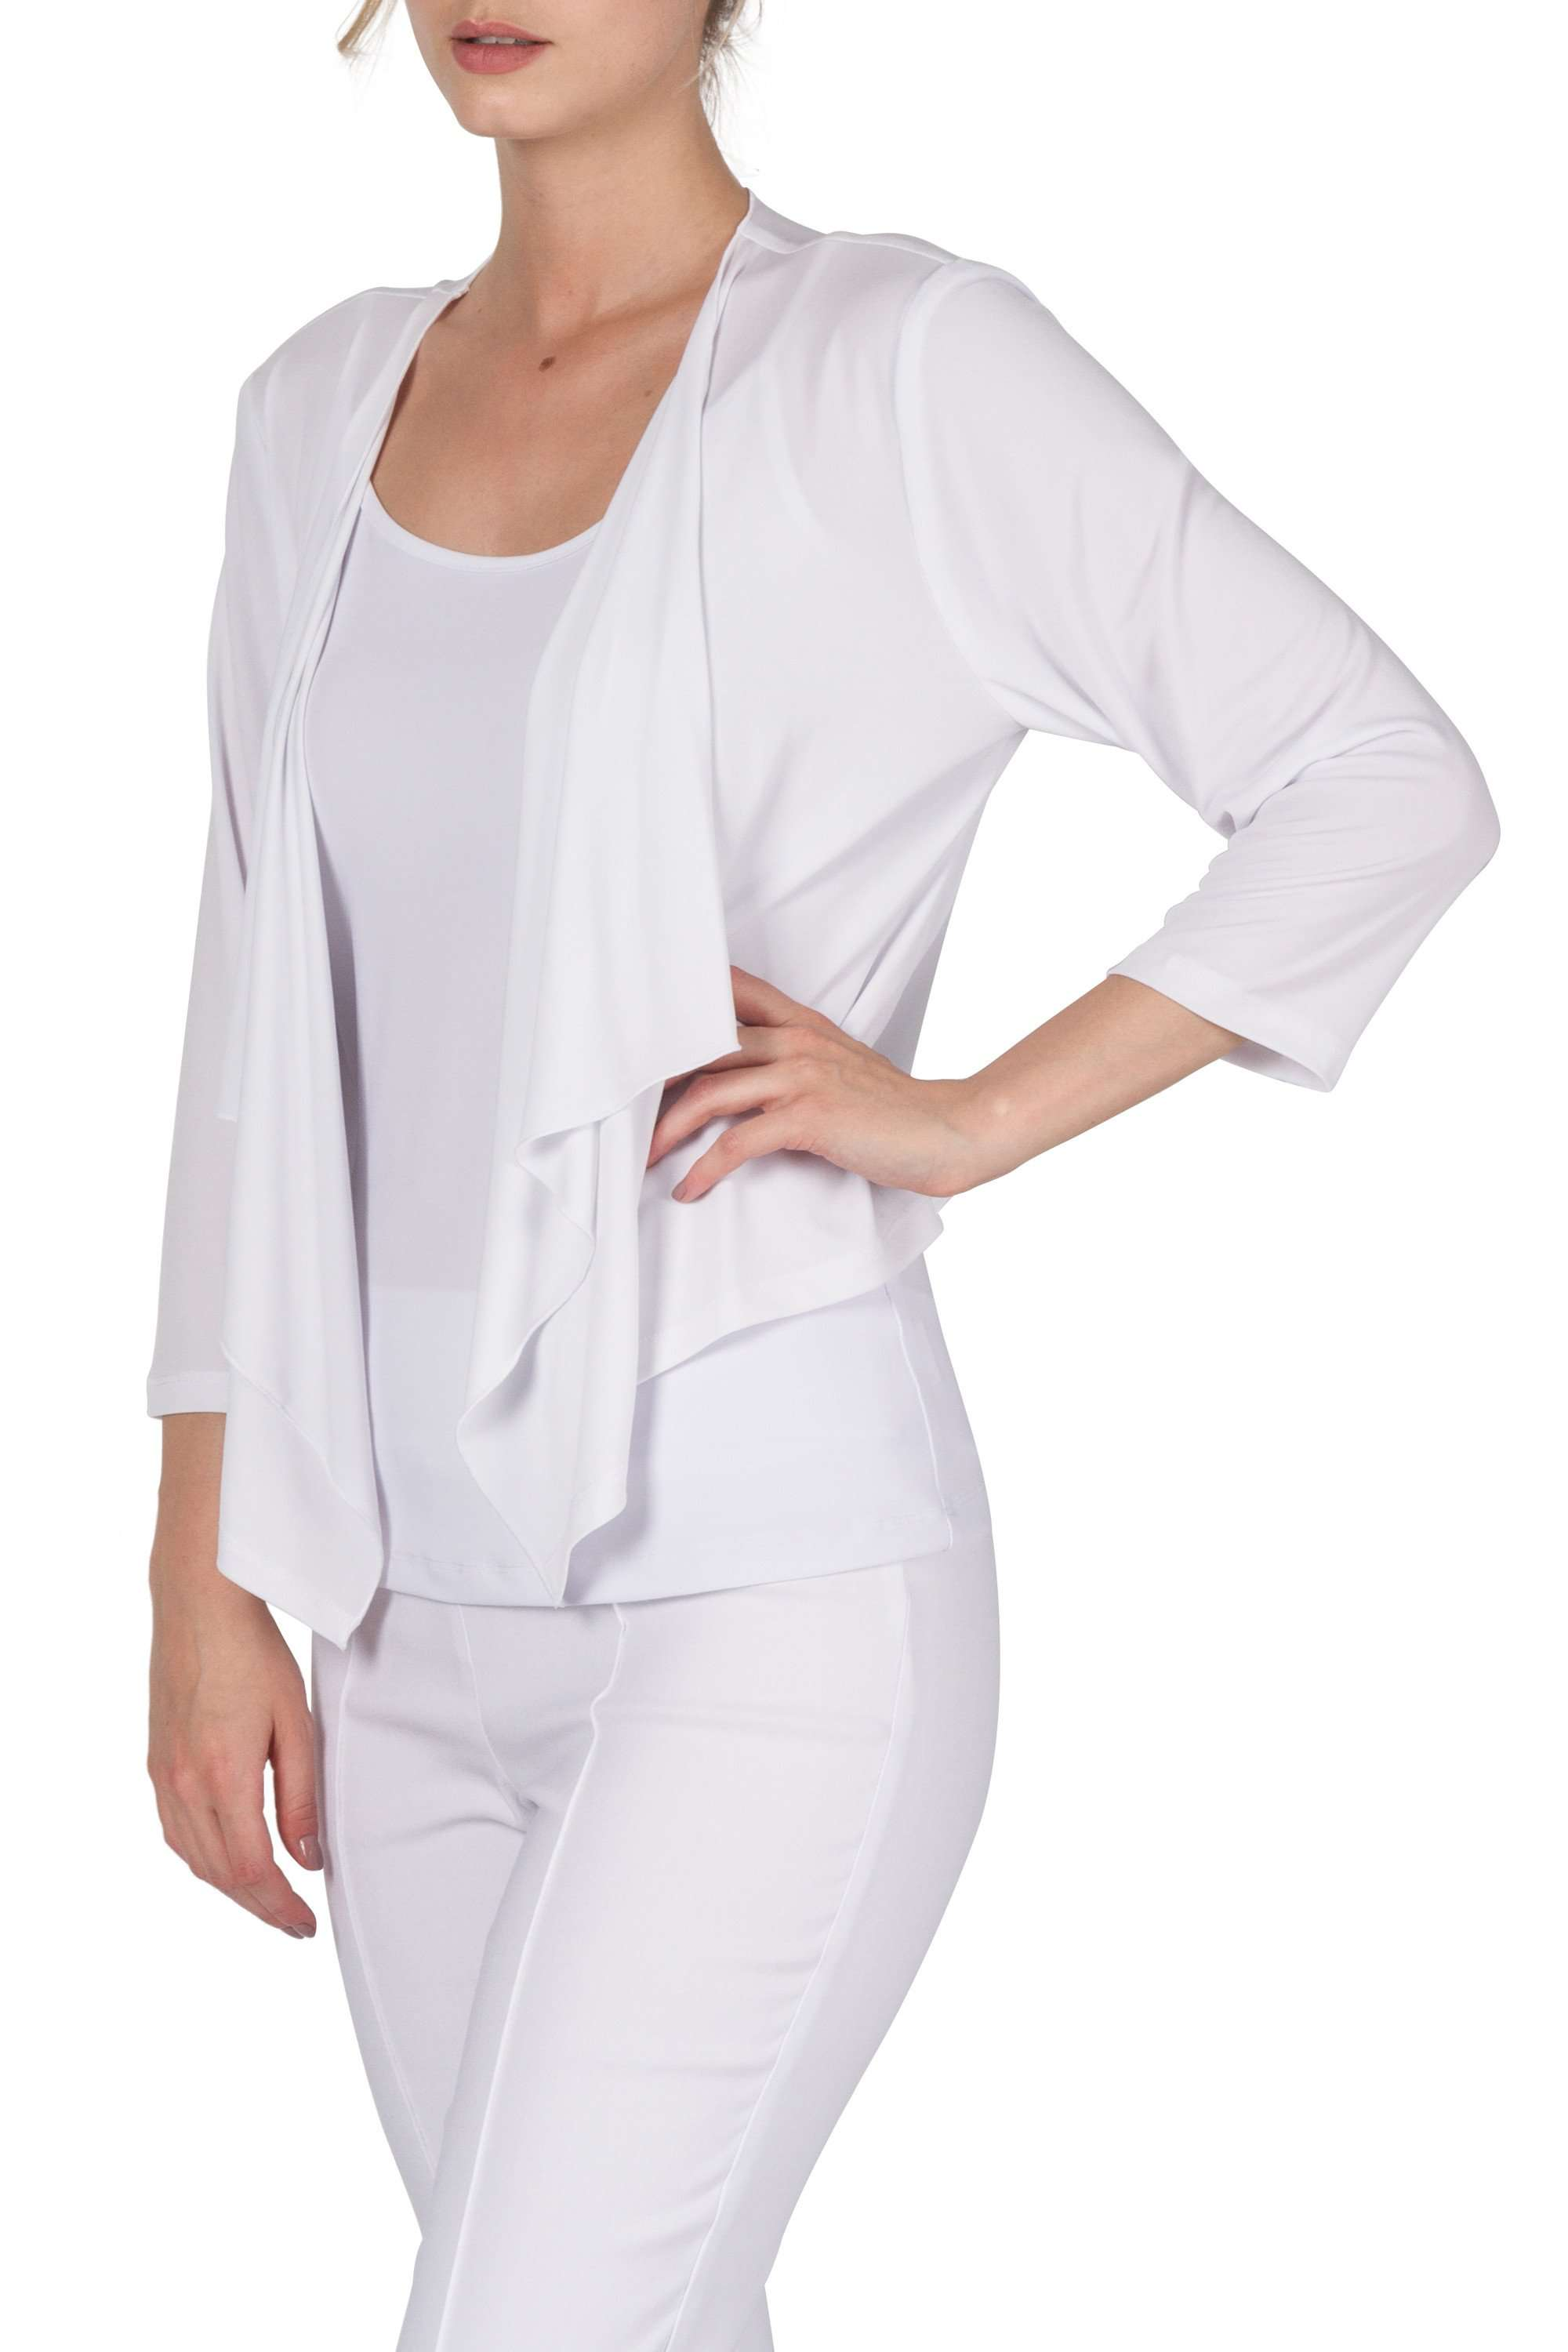 Jacket White Quality Non crease Stertch Knit Fabric-Washable -Great For Travel on Sale Now $39.99 - Yvonne Marie